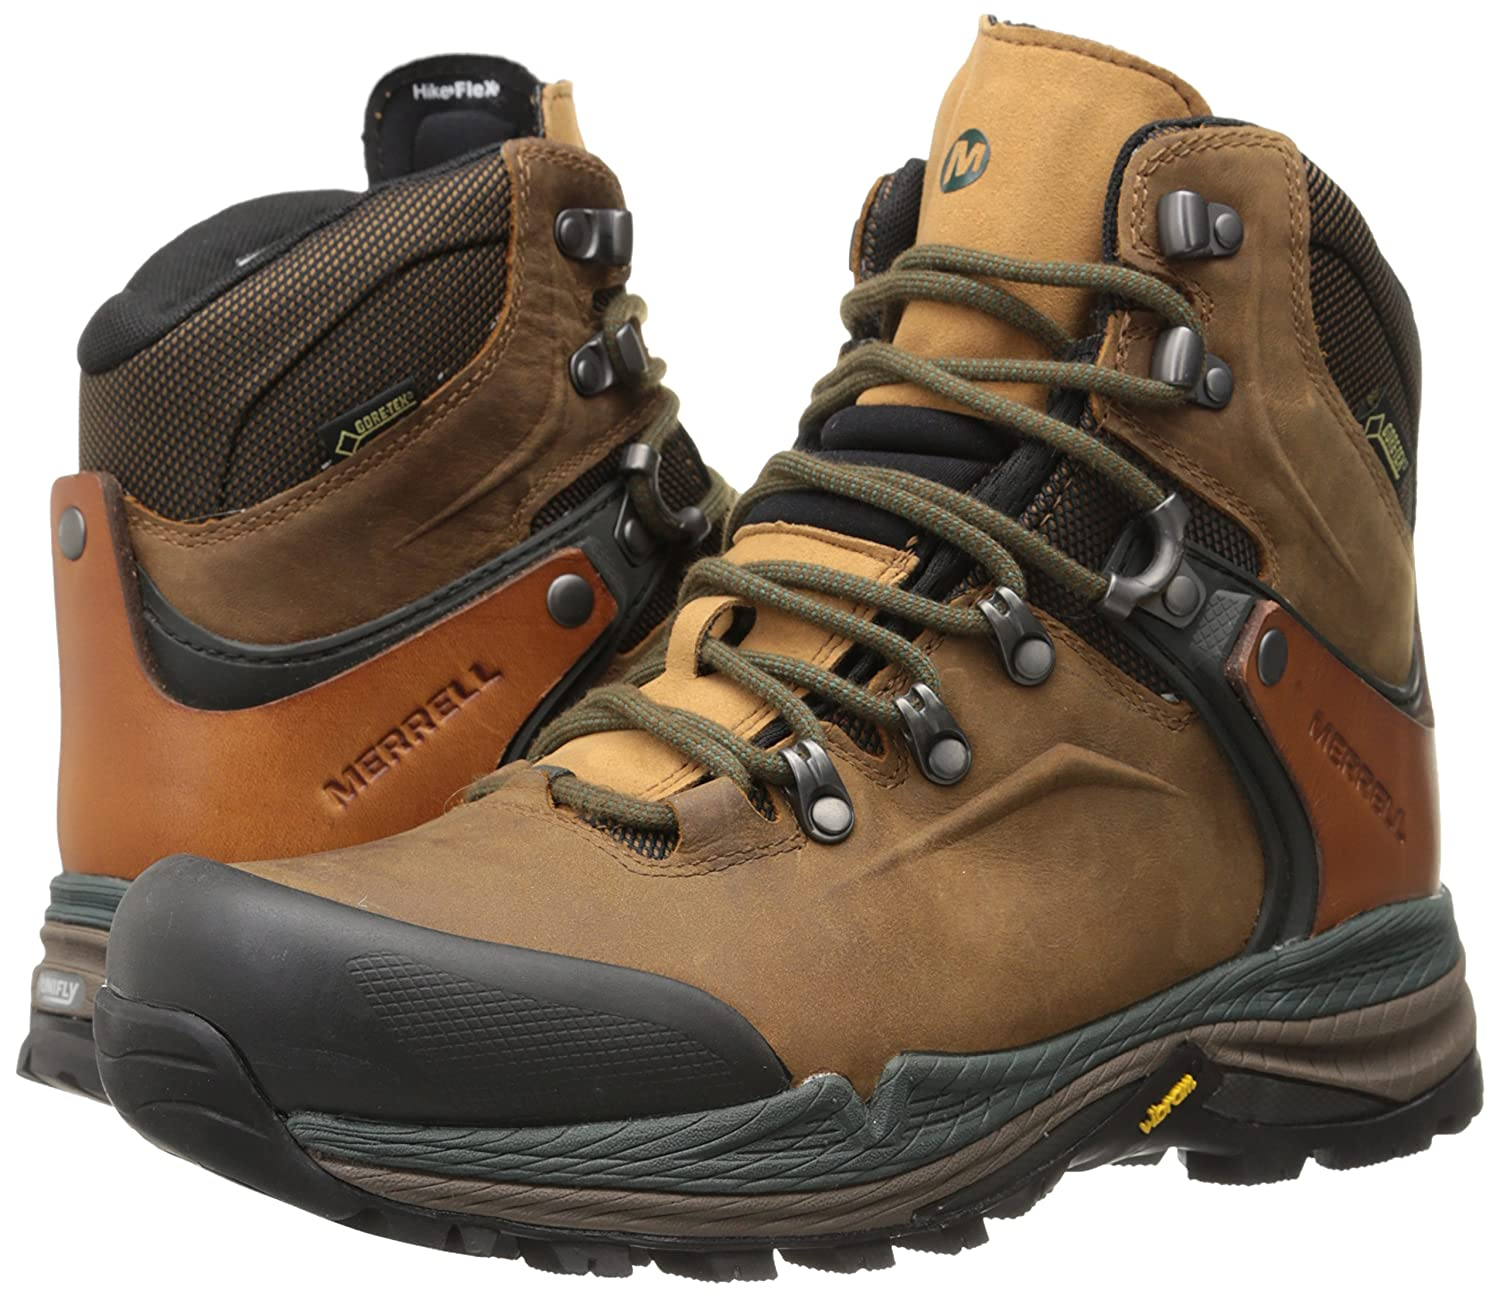 8416f99bbef Merrell Crestbound Gore-Tex®, Men's Trekking and Hiking Boots, J01527,  Brown (Dorado/Forest Green), 8.5 UK: Amazon.co.uk: Shoes & Bags